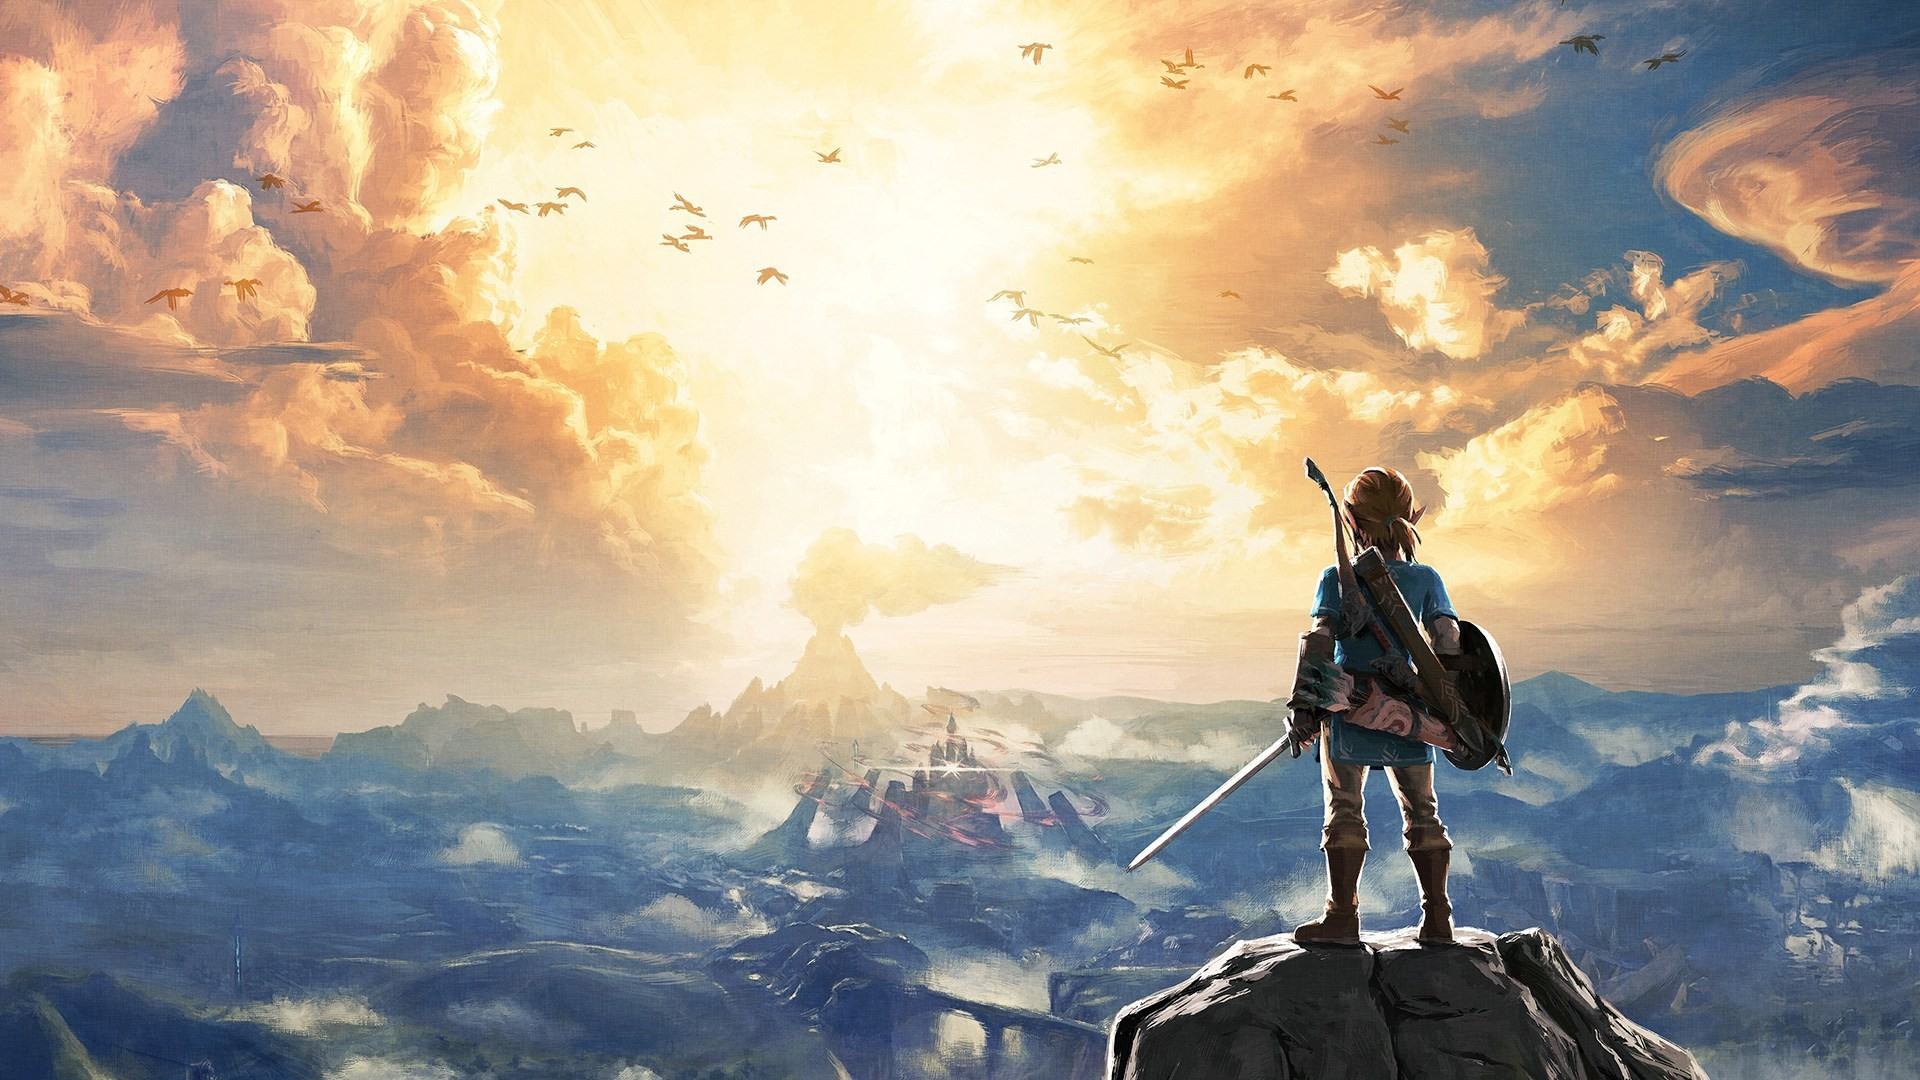 Breath Of The Wild Backgrounds: Zelda Breath Of The Wild Wallpaper ·① Download Free Cool